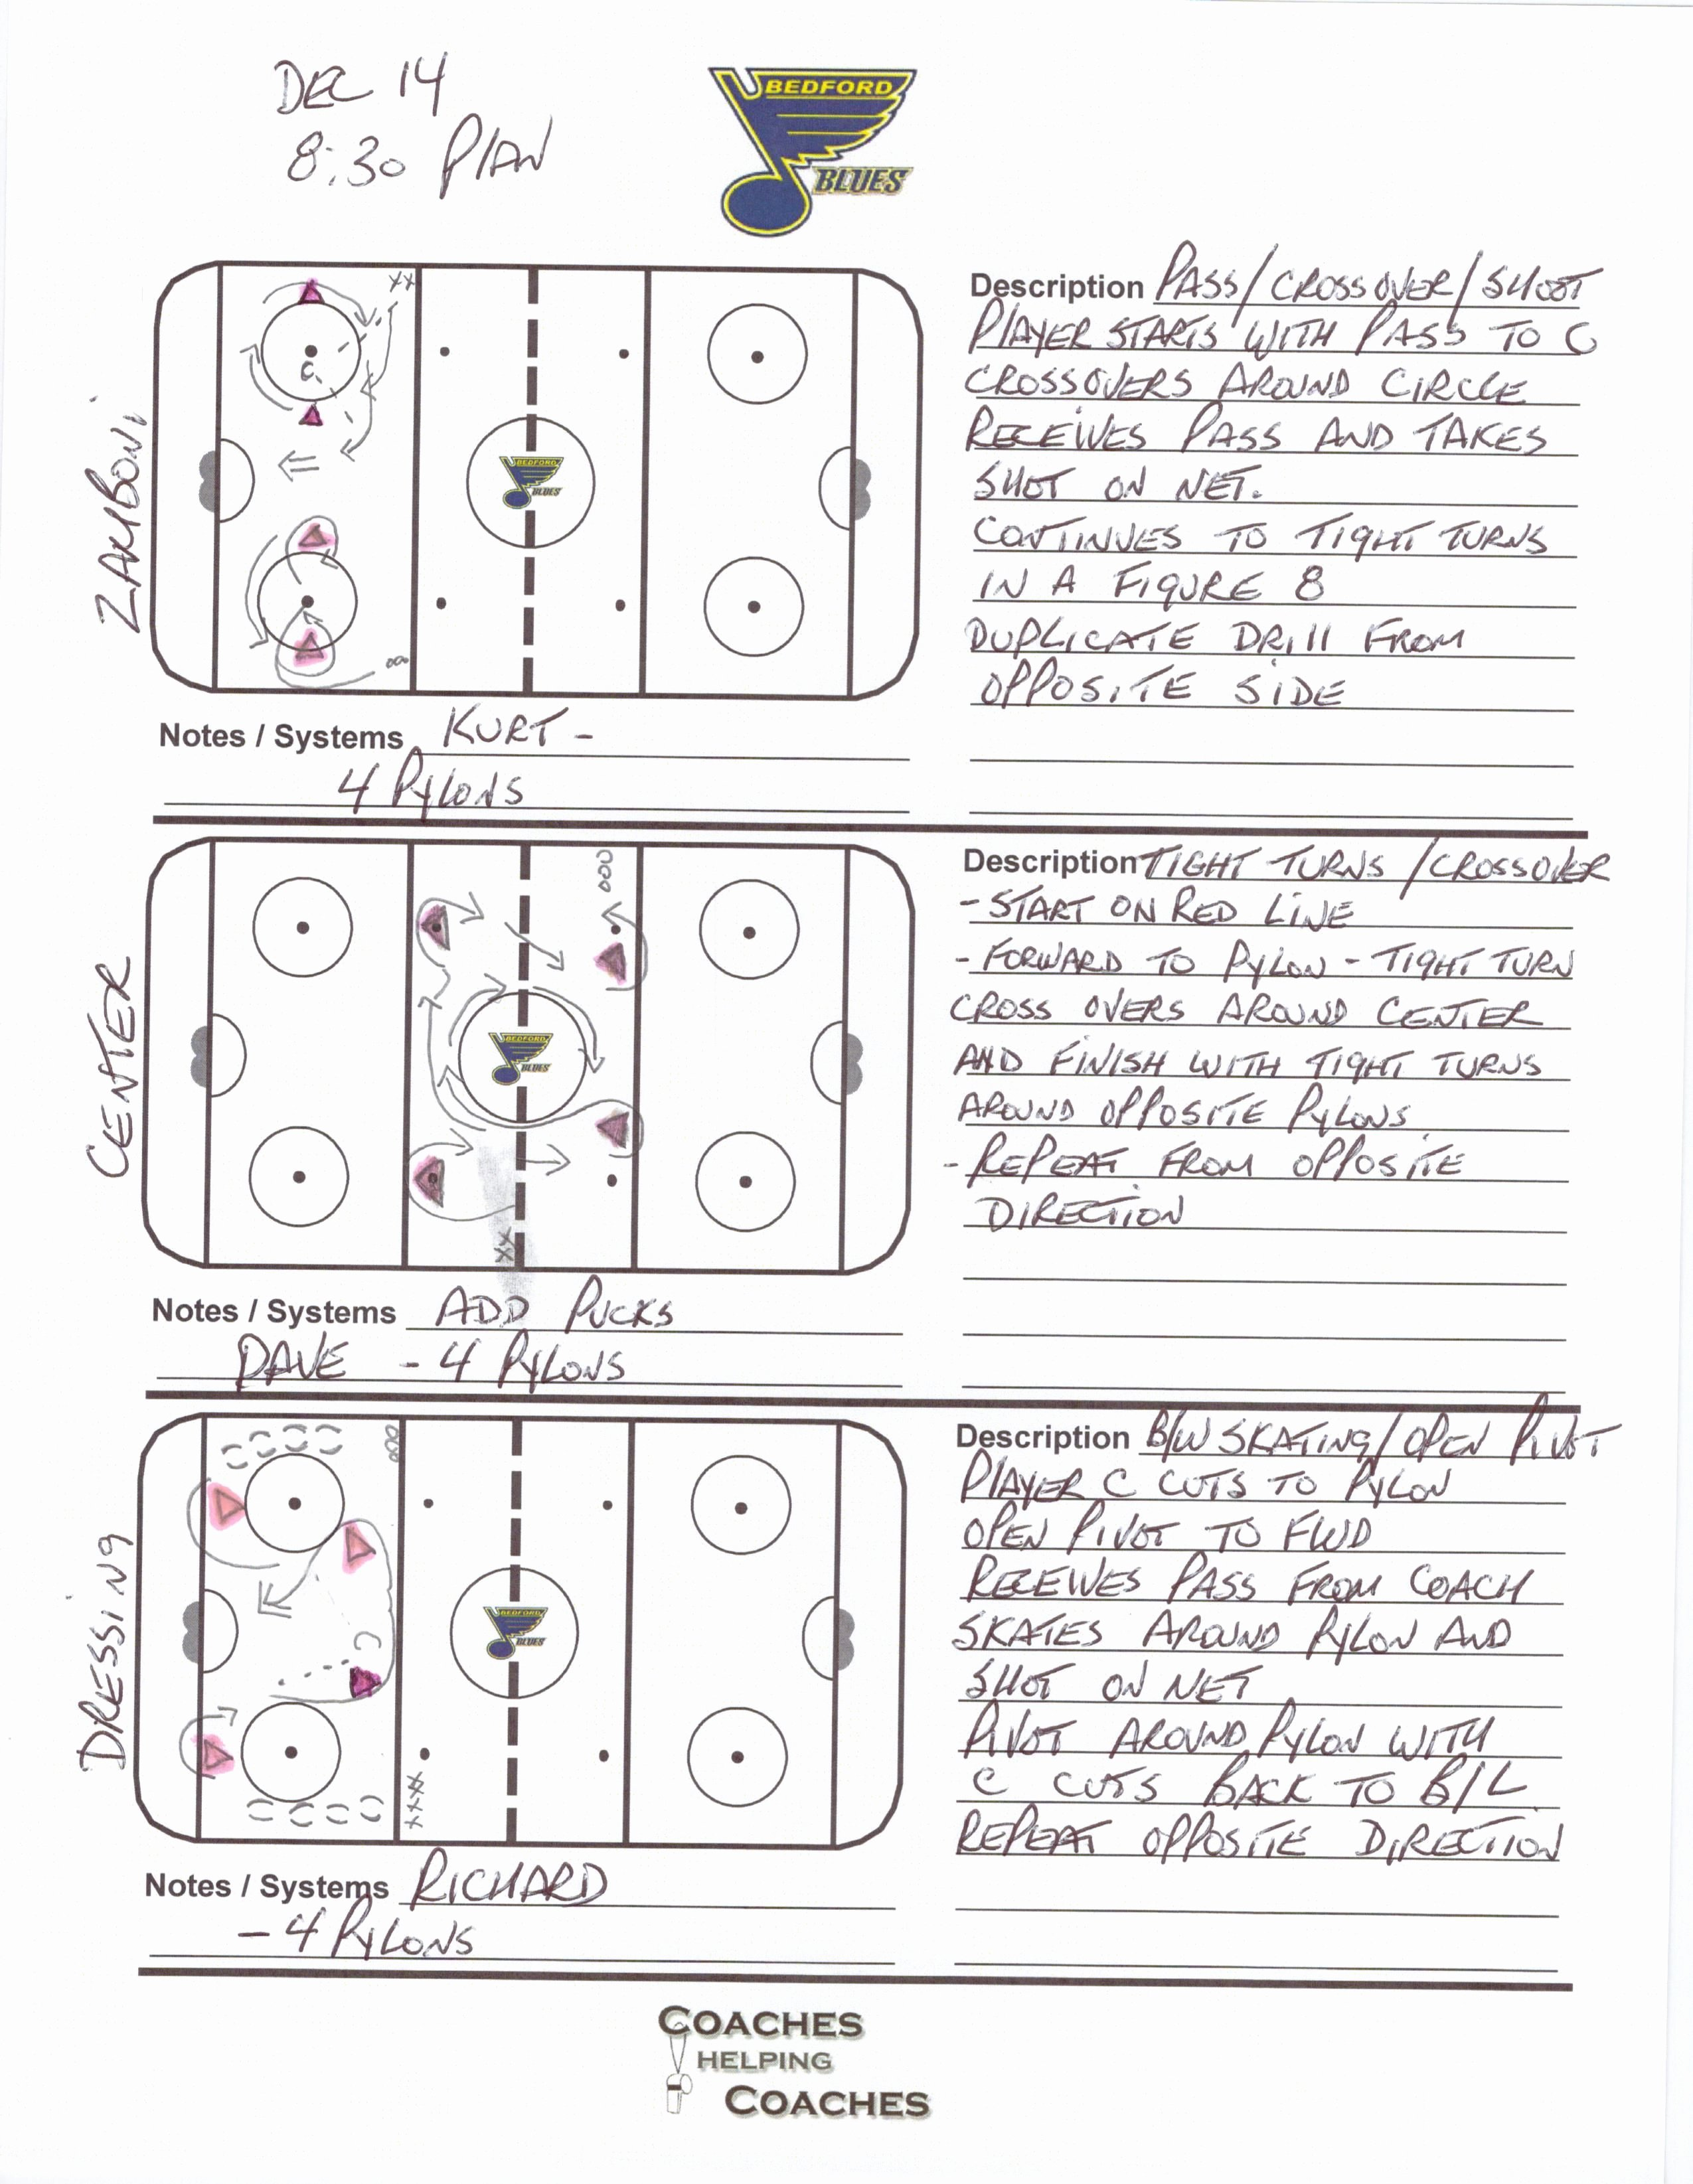 Hockey Practice Plan Template Beautiful Full Ice Practice Plan for Novice U8 with Three